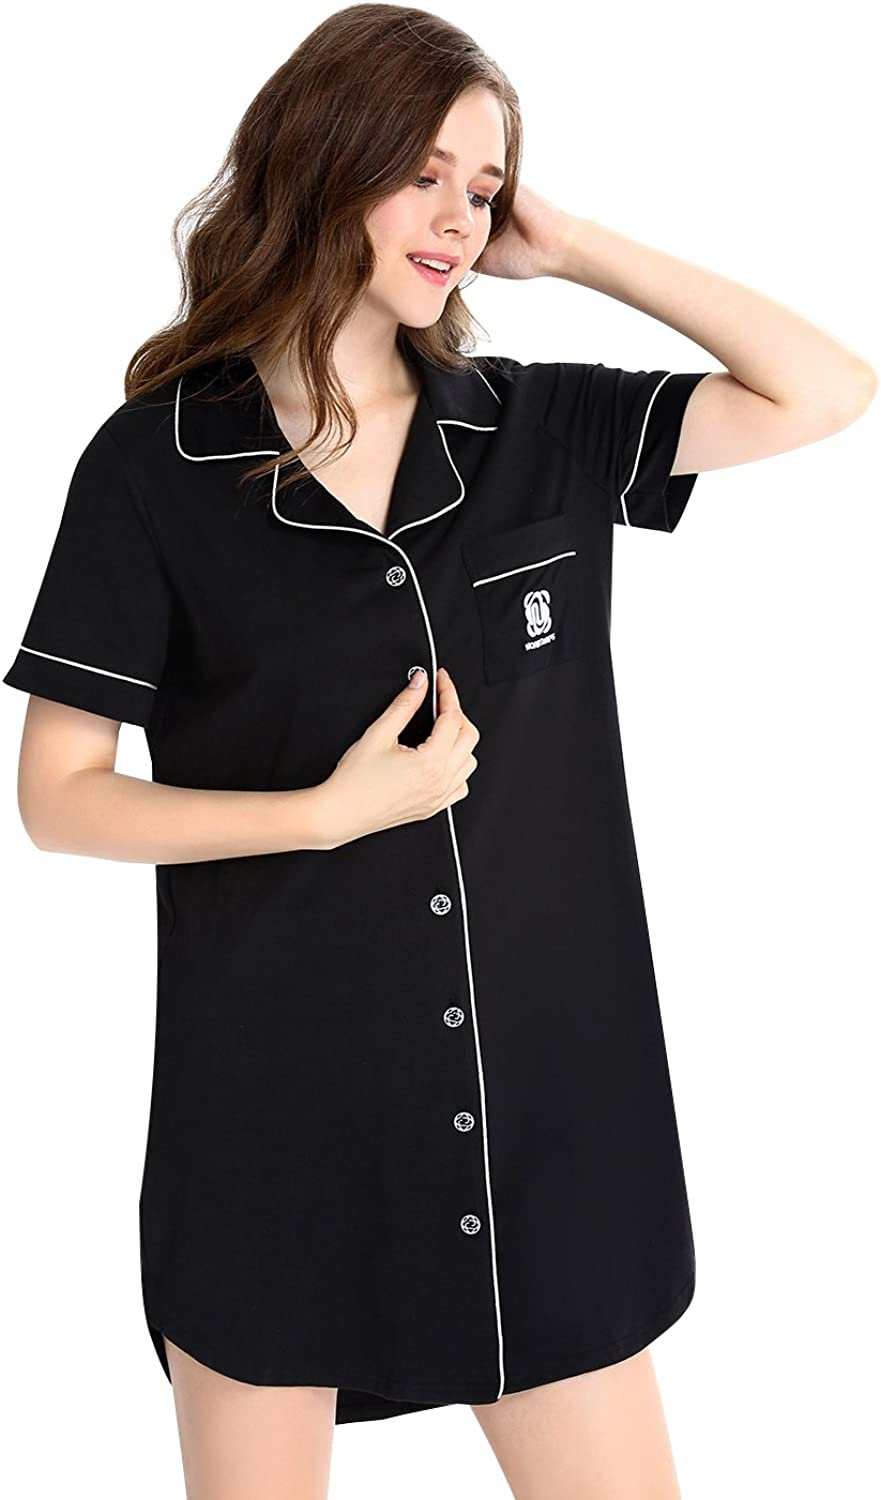 N NORA TWIPS Womens Sleep Shirt Sleepwear Short Sleeve ButtonFront Nightshirts (Black,L)